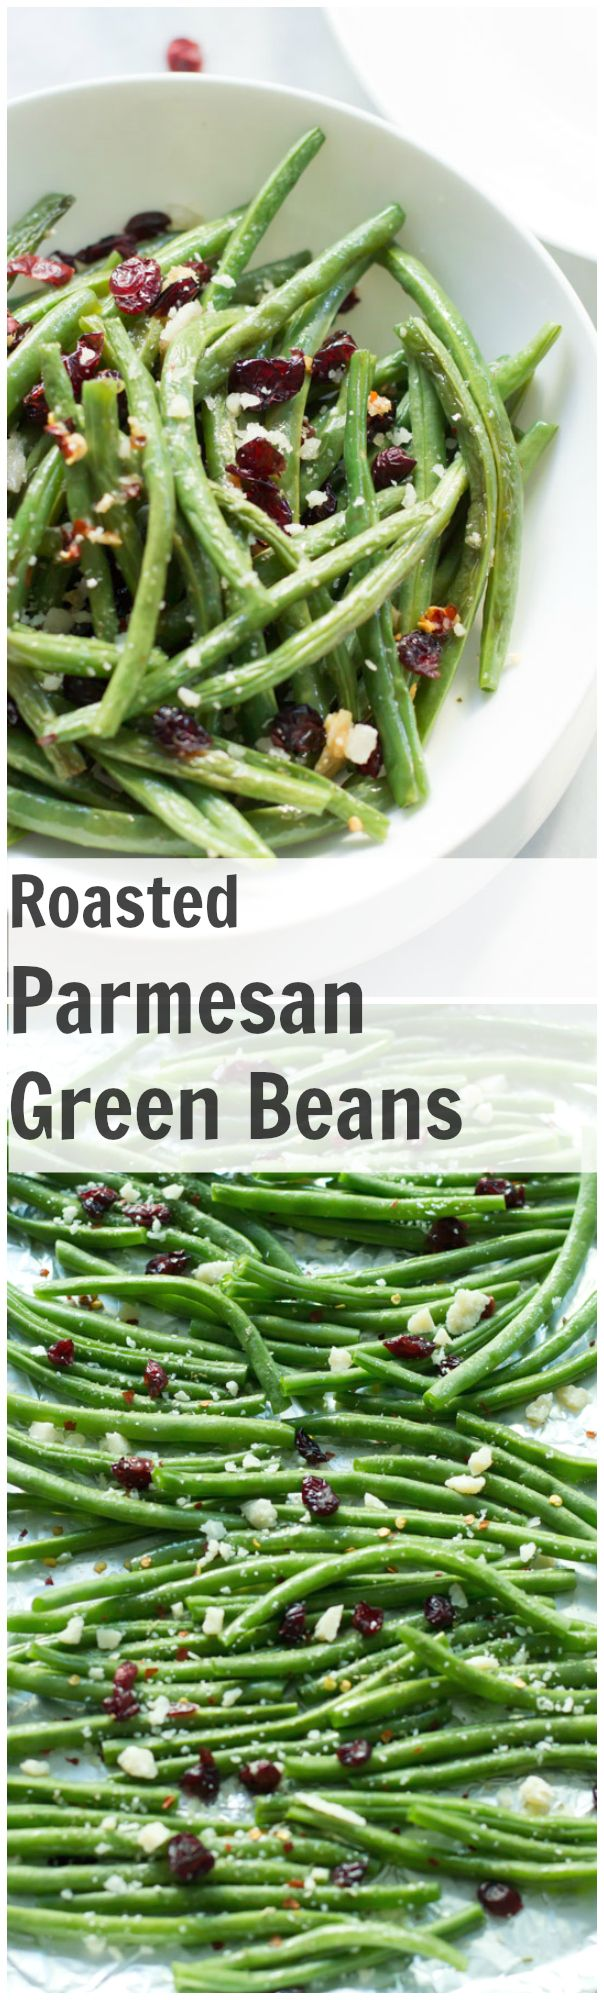 Roasted Parmesan Green Beans | Recipe | Dried cranberries, The o'jays ...